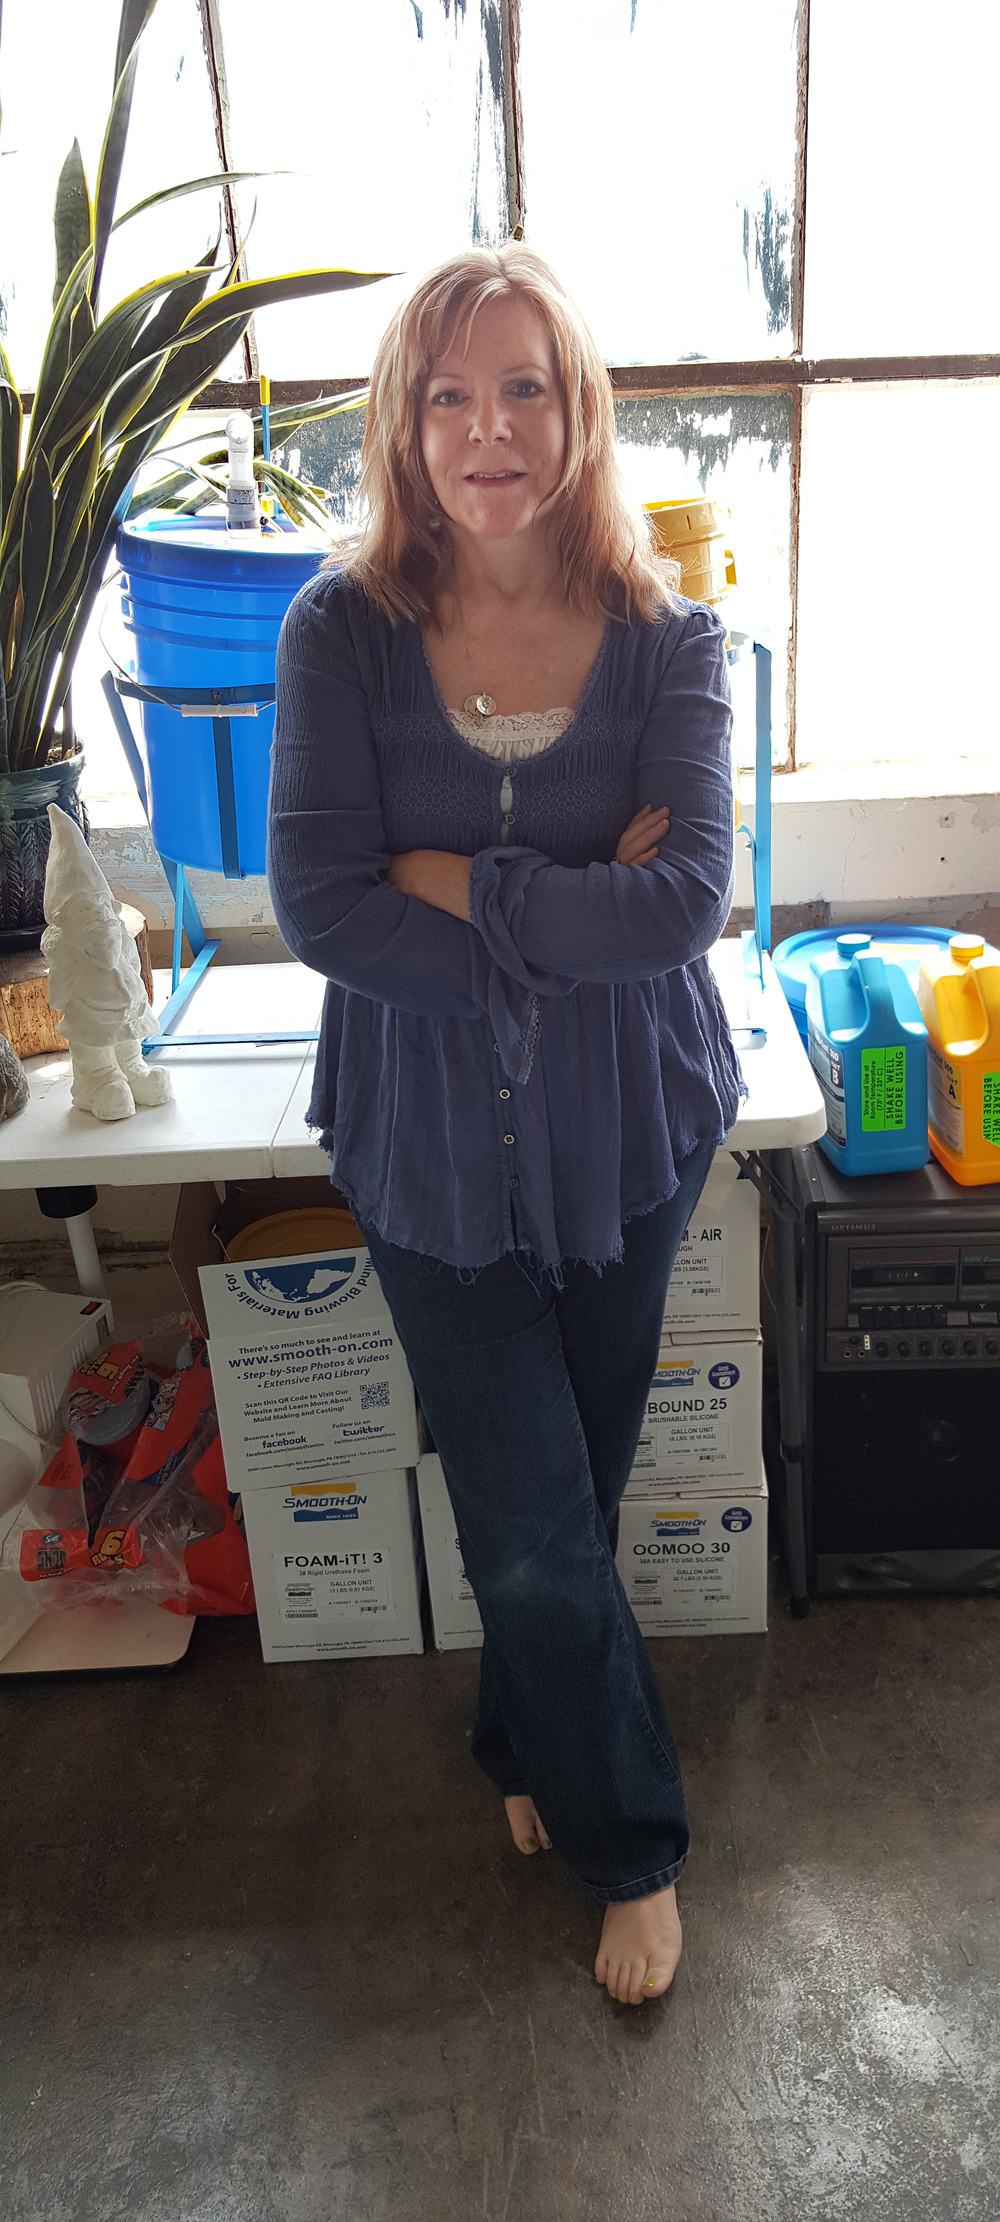 A white woman with medium-length red hair in jeans & a blue top leans against a table in a cluttered studio.